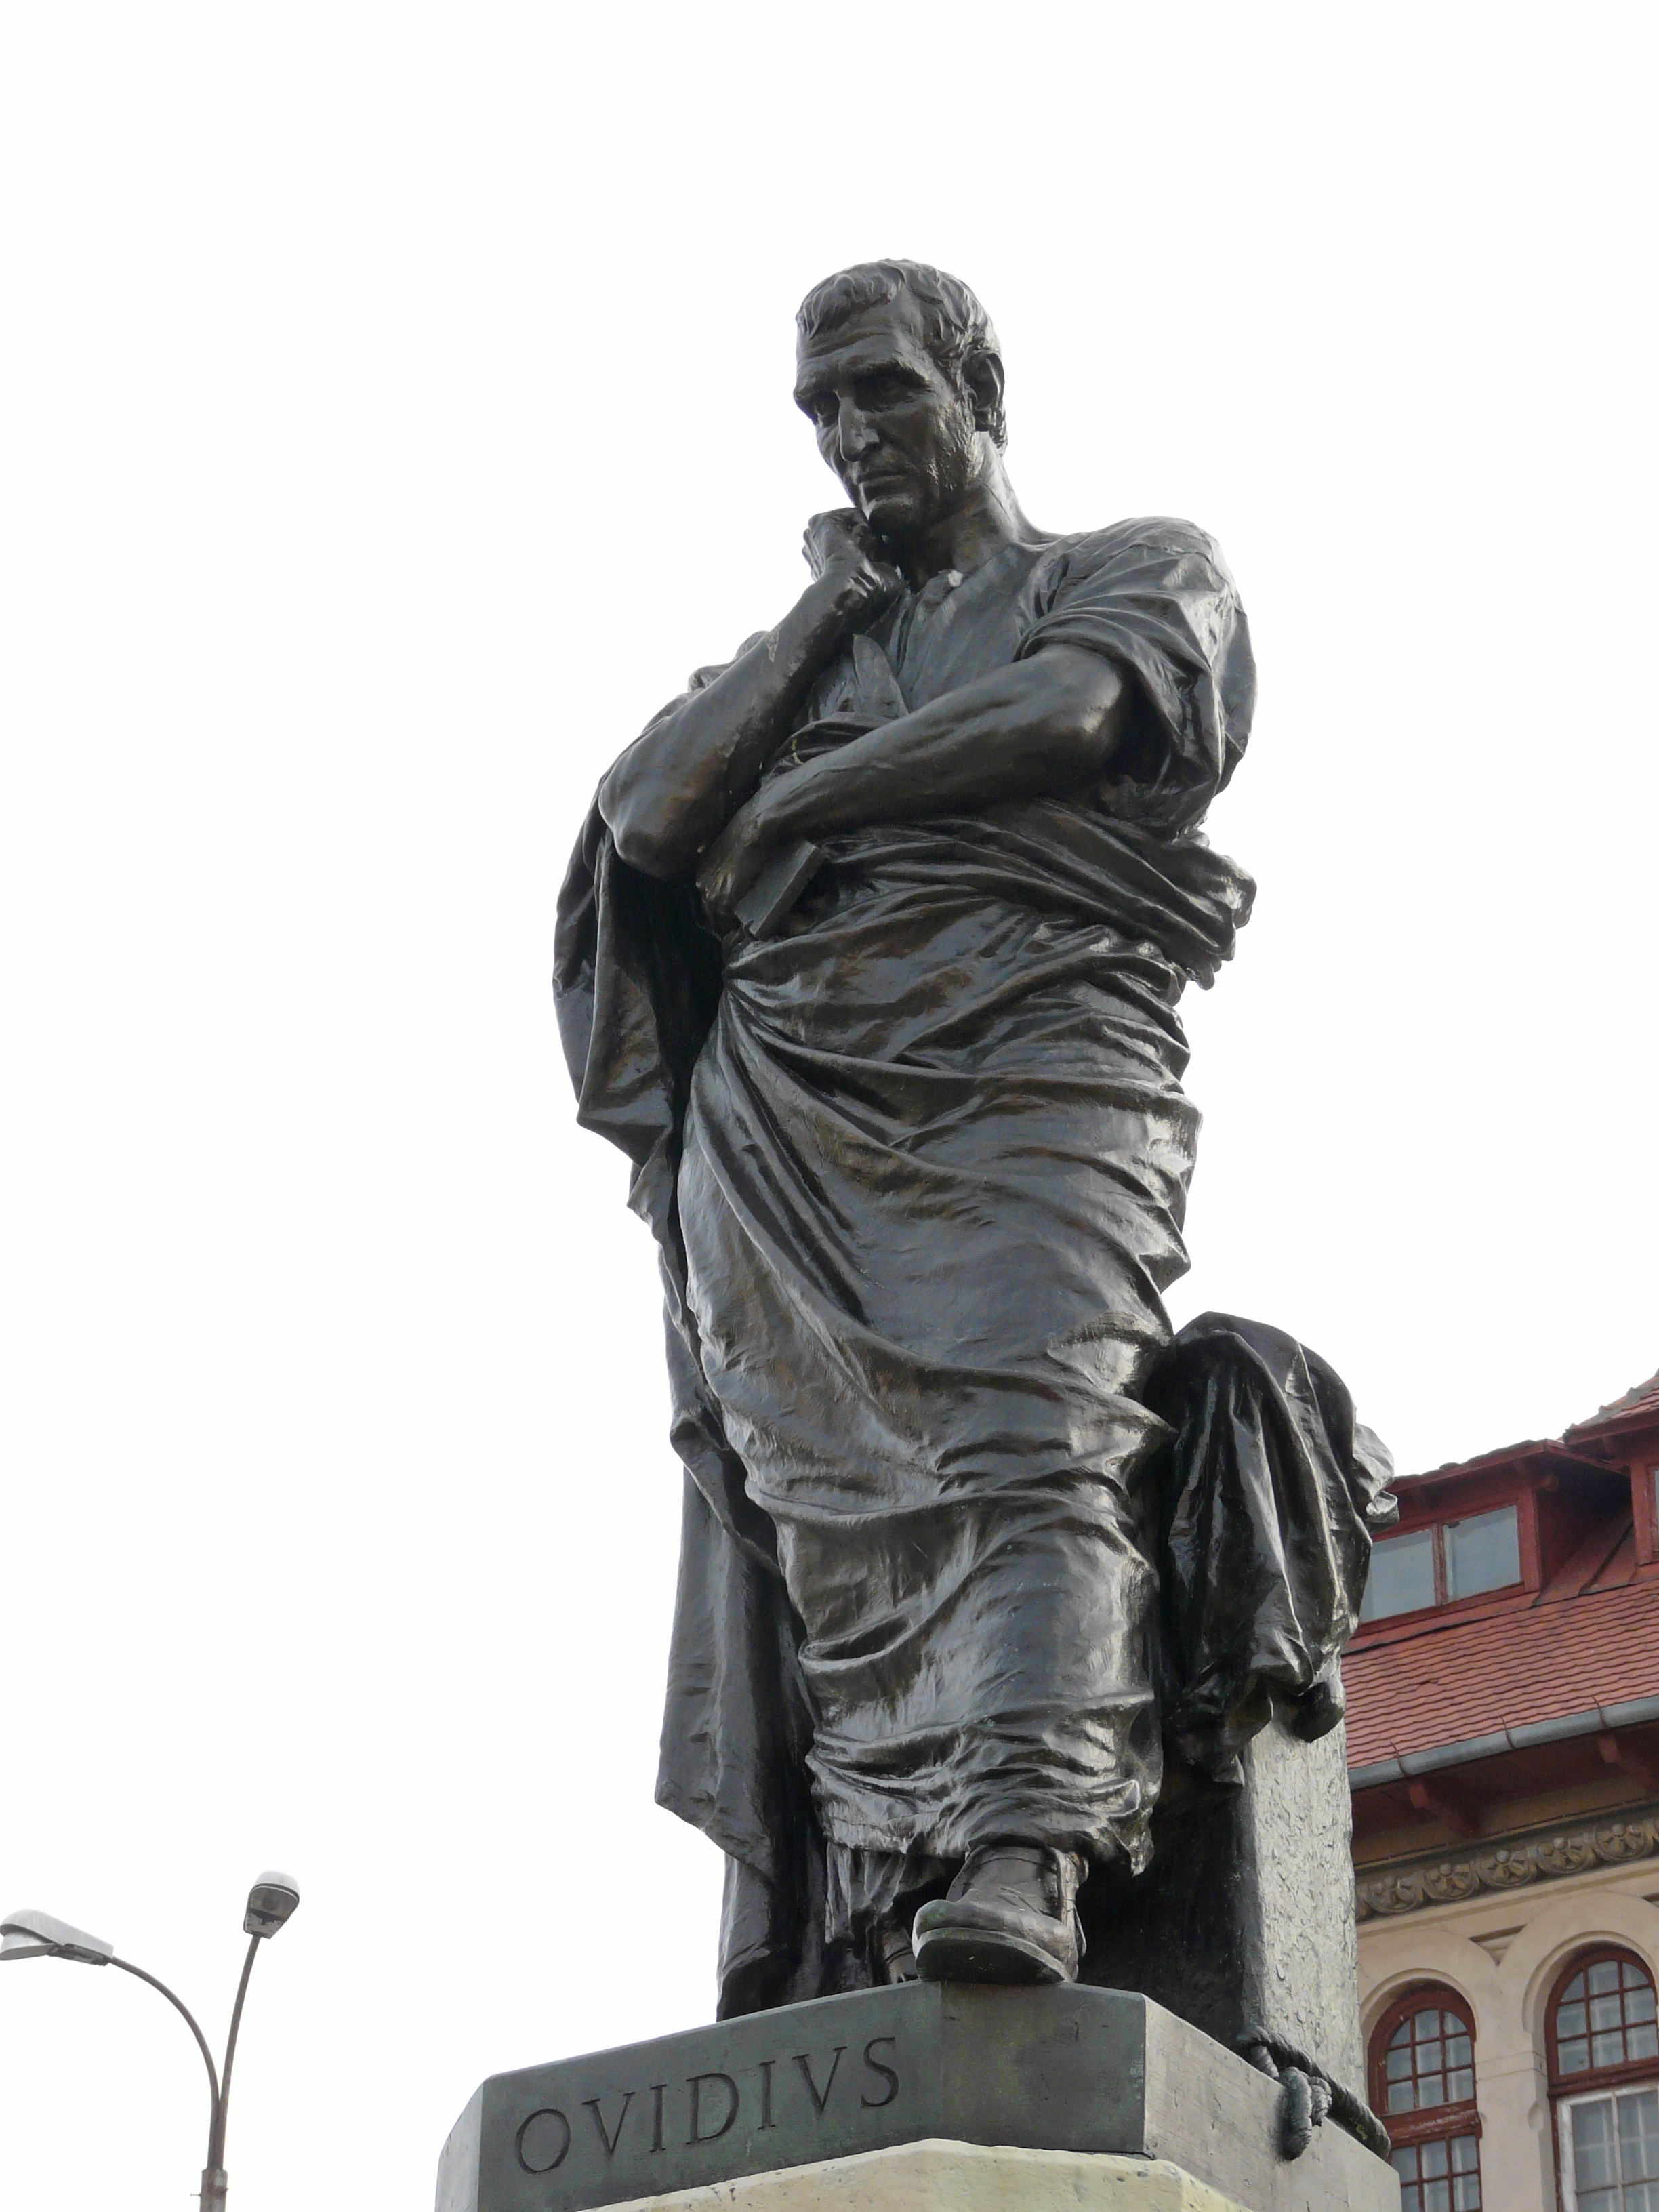 Ovid File:Statue of Roman p...